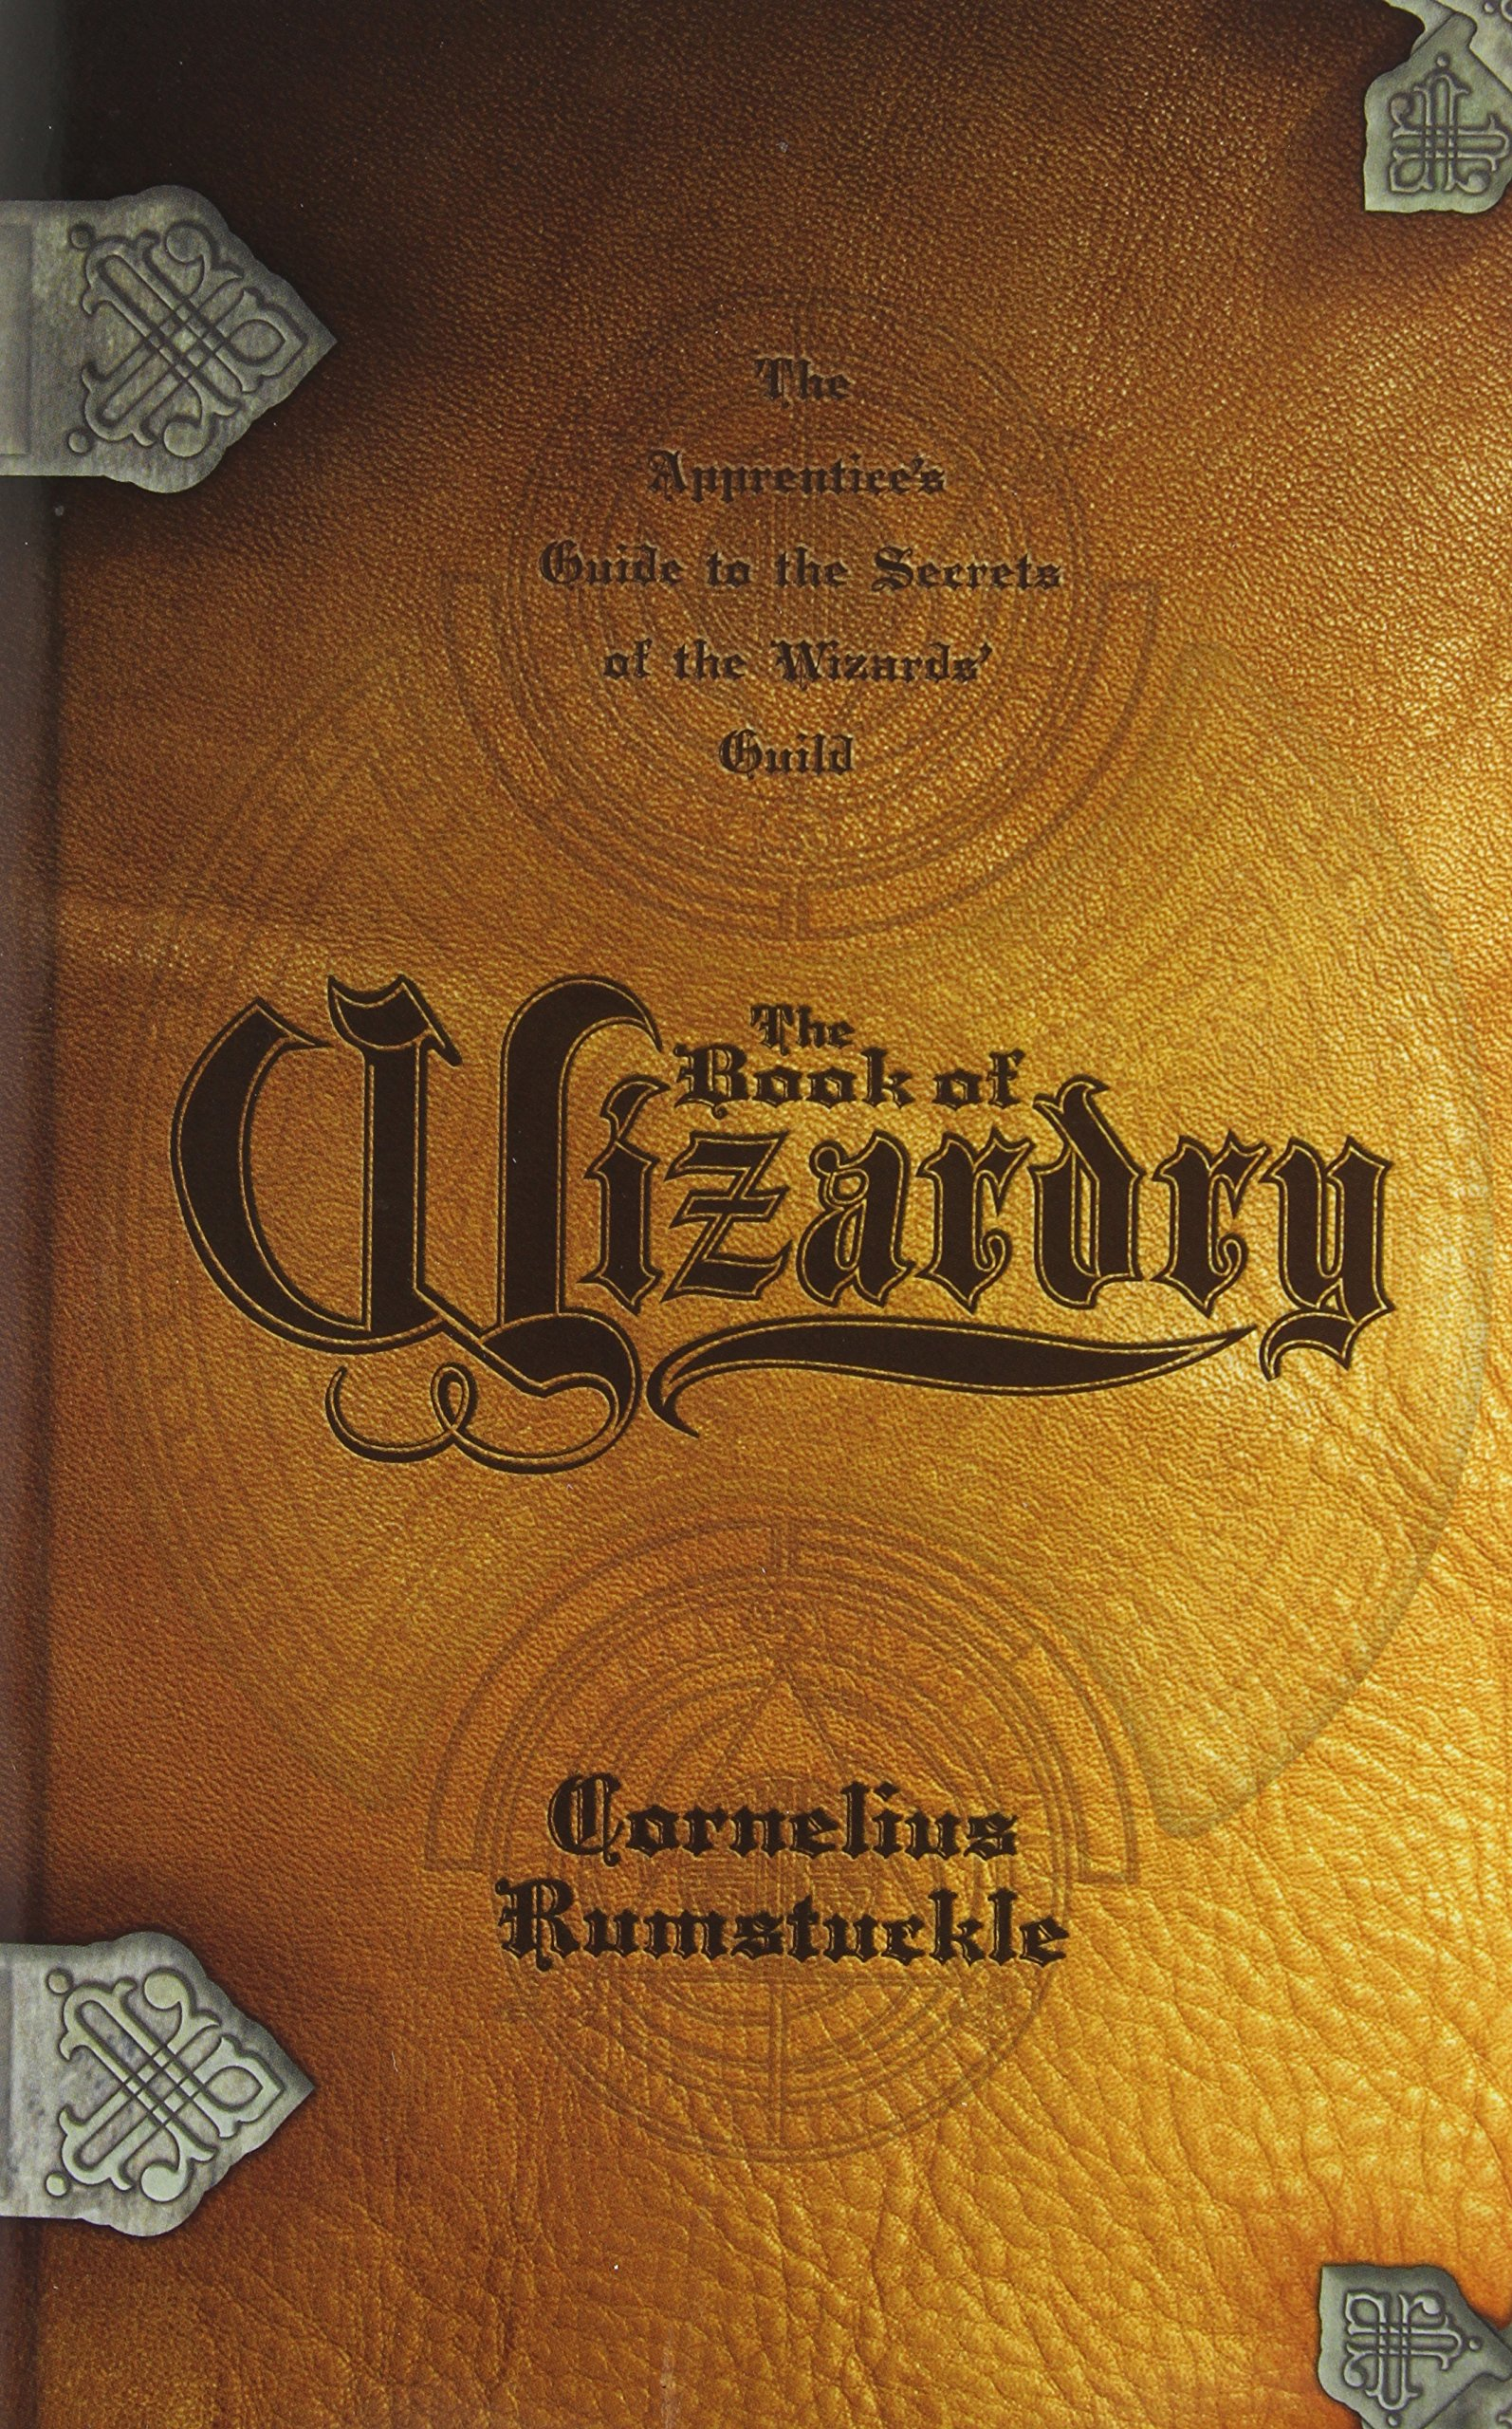 The Book Of Wizardry: The Apprentice's Guide To The Secrets Of The Wizards'  Guild: Cornelius Rumstuckle: 9780738701653: Amazon: Books